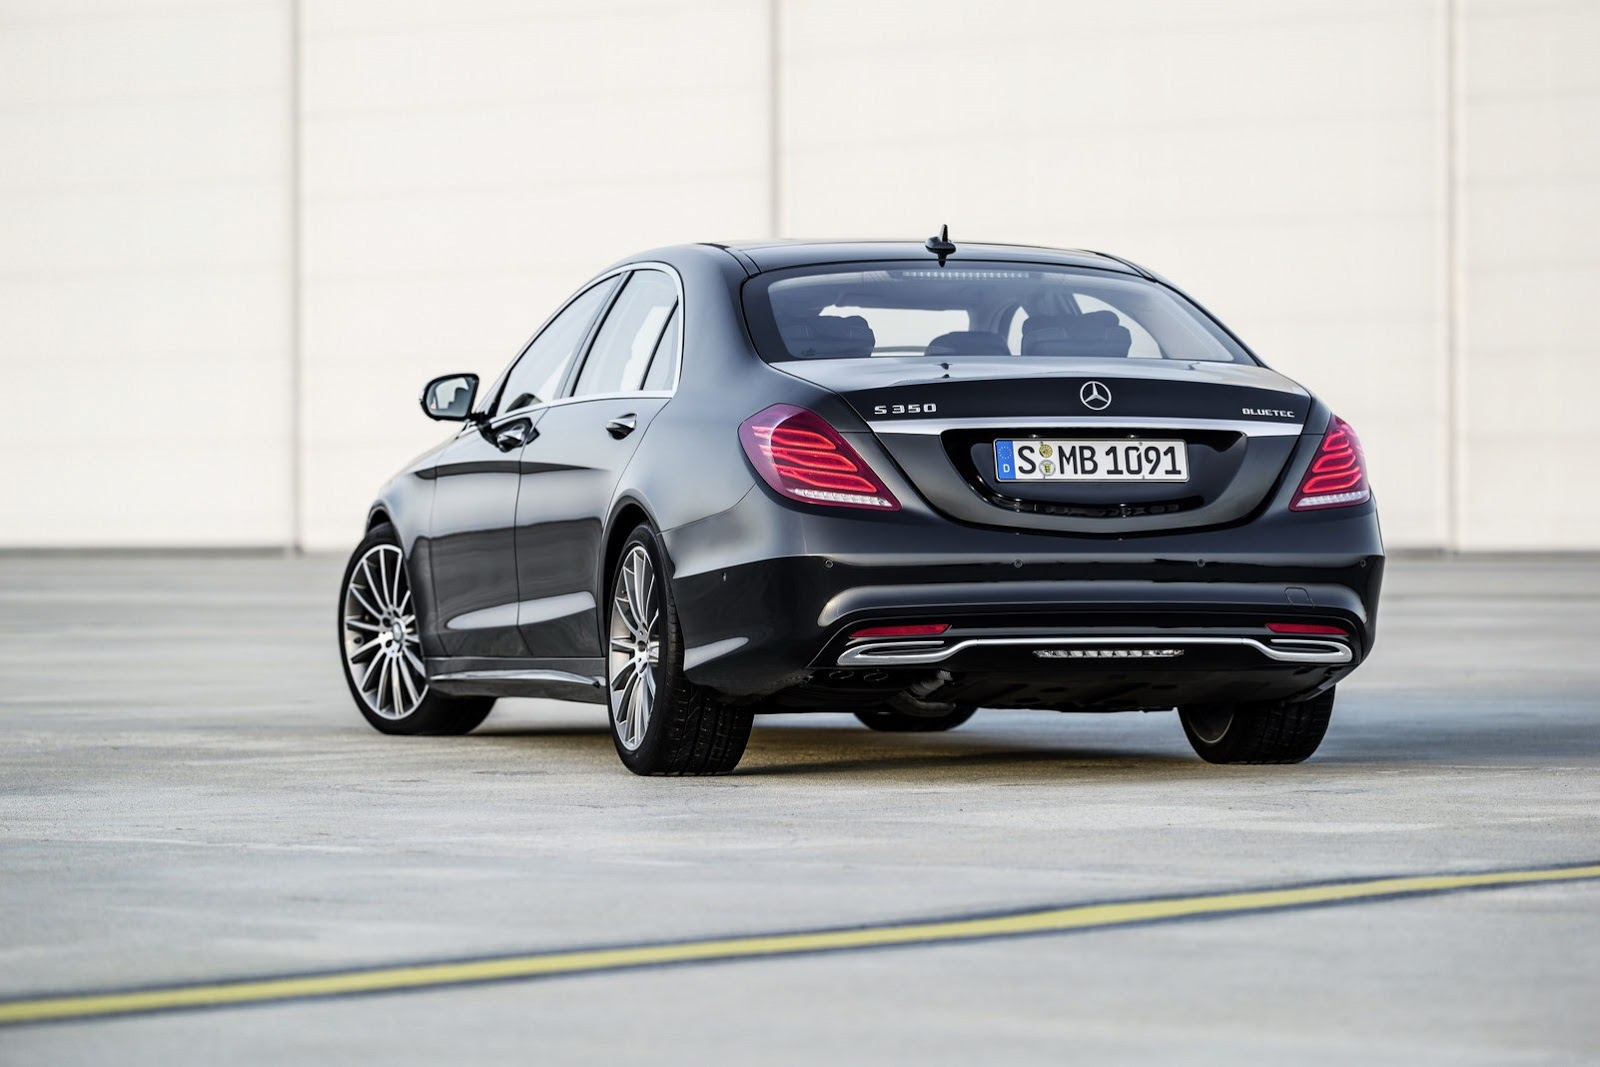 2014 Mercedes Benz S-Class - SMADE MEDIA (56)